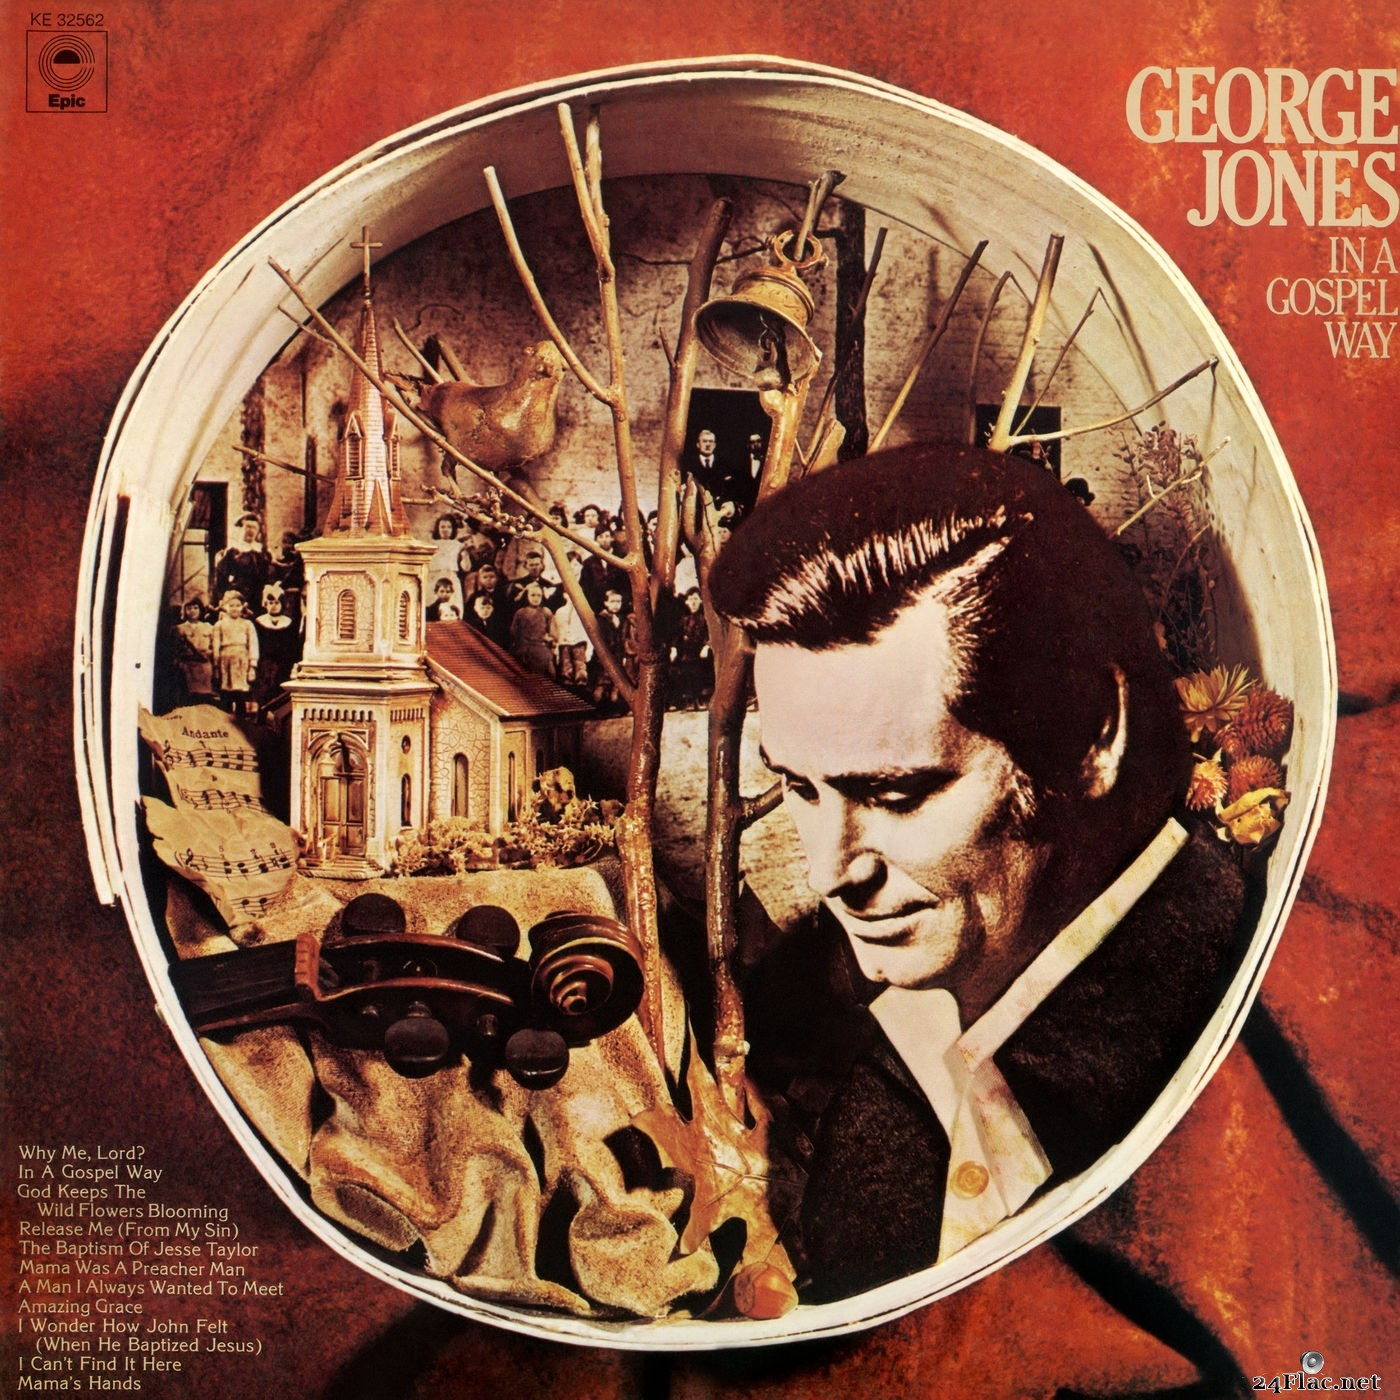 George Jones - In a Gospel Way (2019) Hi-Res